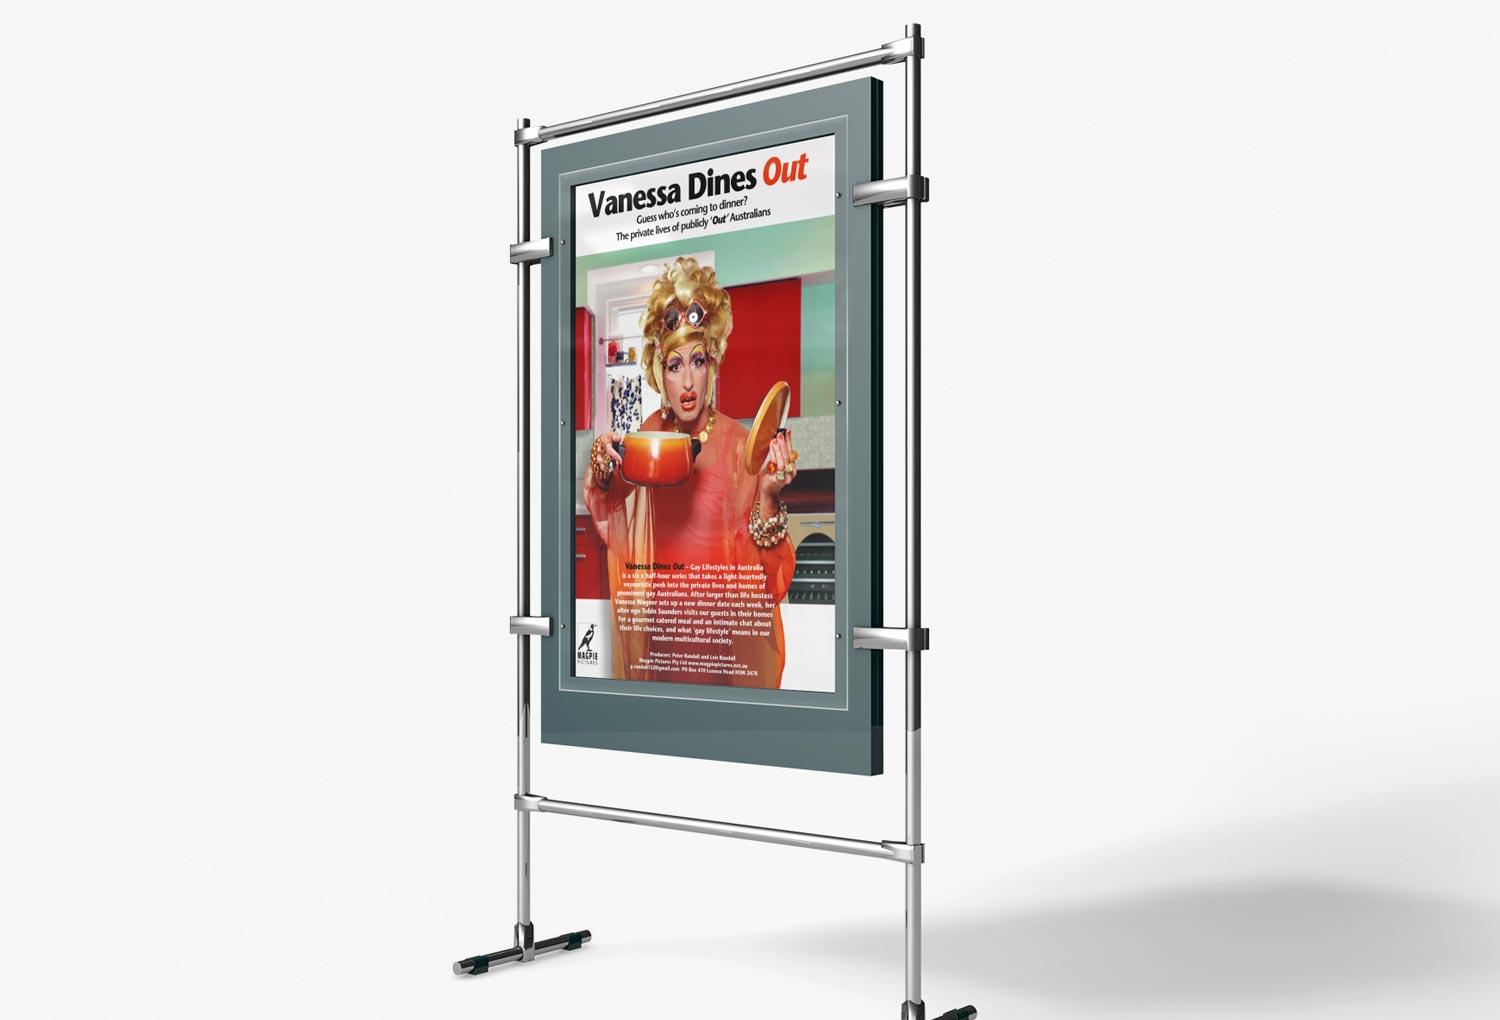 Vanessa Dines Out TV Poster By Mango Tree Media